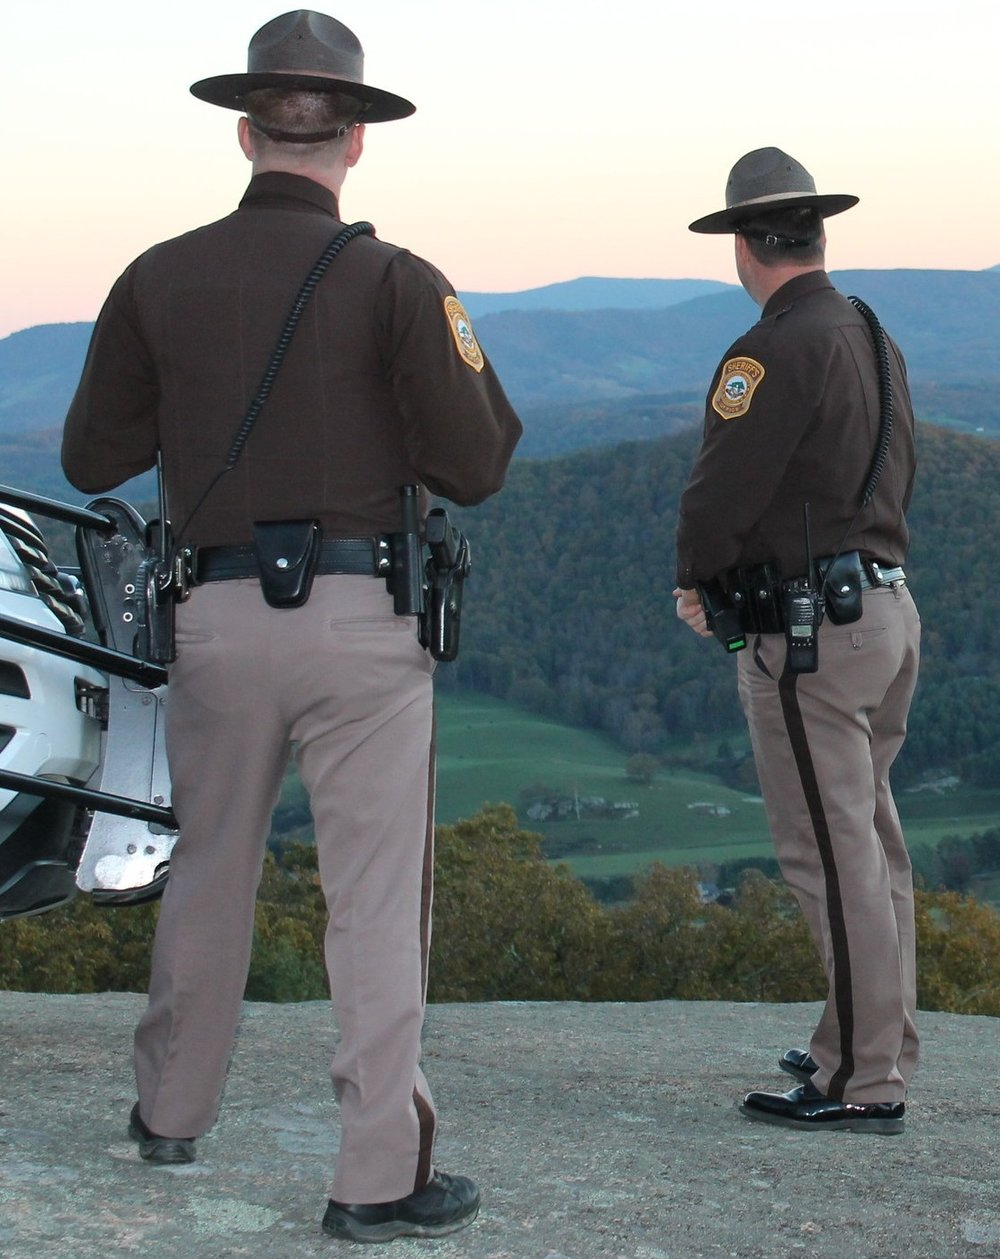 The Issue - Law Enforcement Sheriffs answer dangerous calls around the clock, often alone, involving dangerous felons with firearms, domestic disputes, and dangerous crimes in progress.In spite of this, the starting salary for deputy sheriffs is below the livable wage of $31,629.